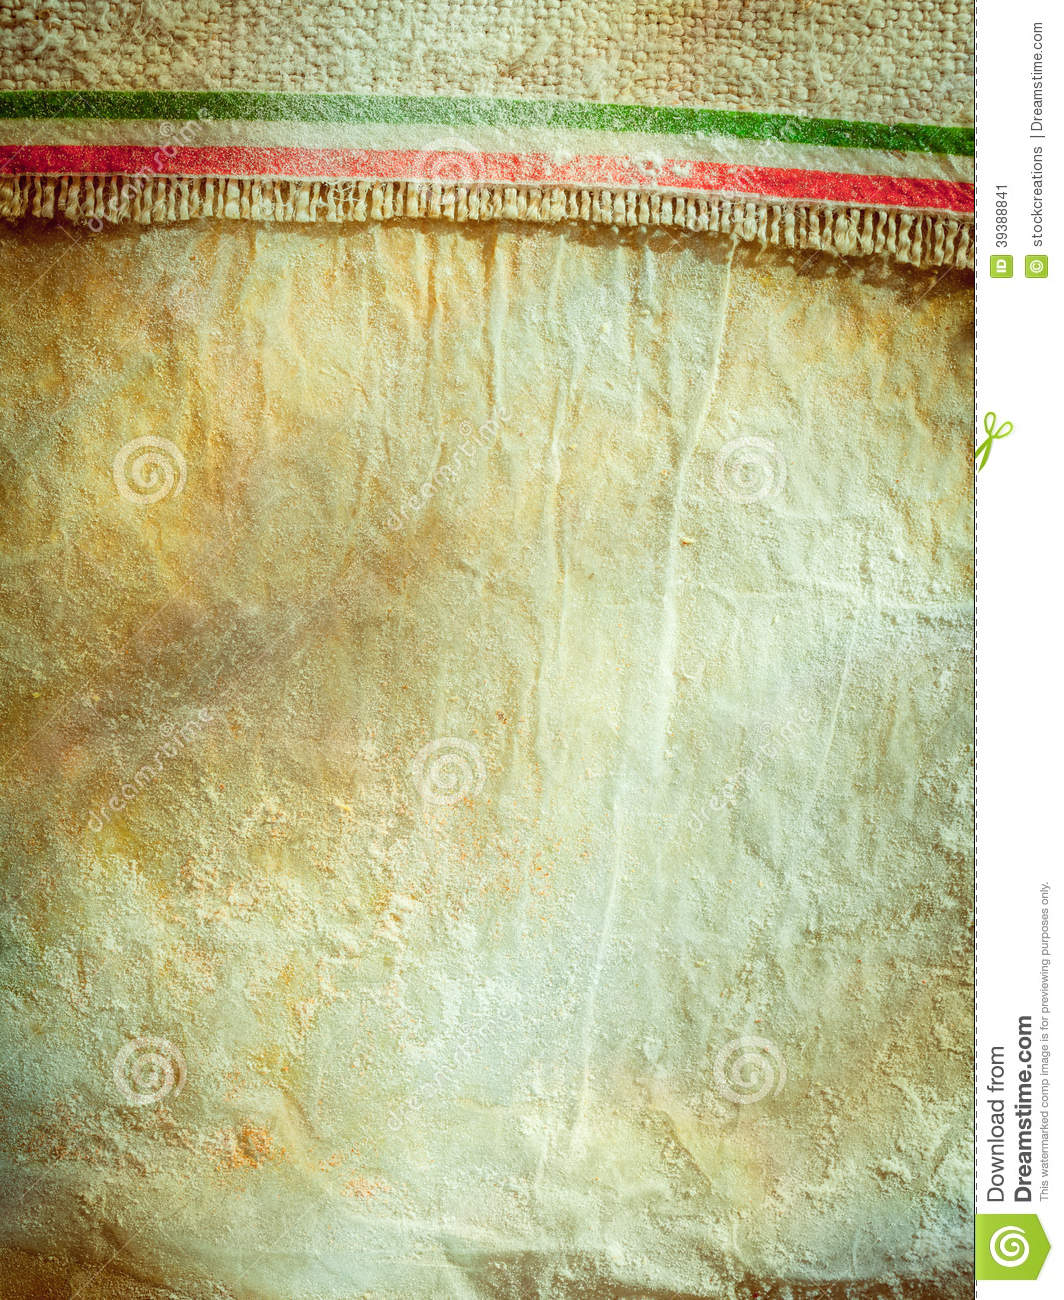 rustic italian food background pattern copyspace 39388841